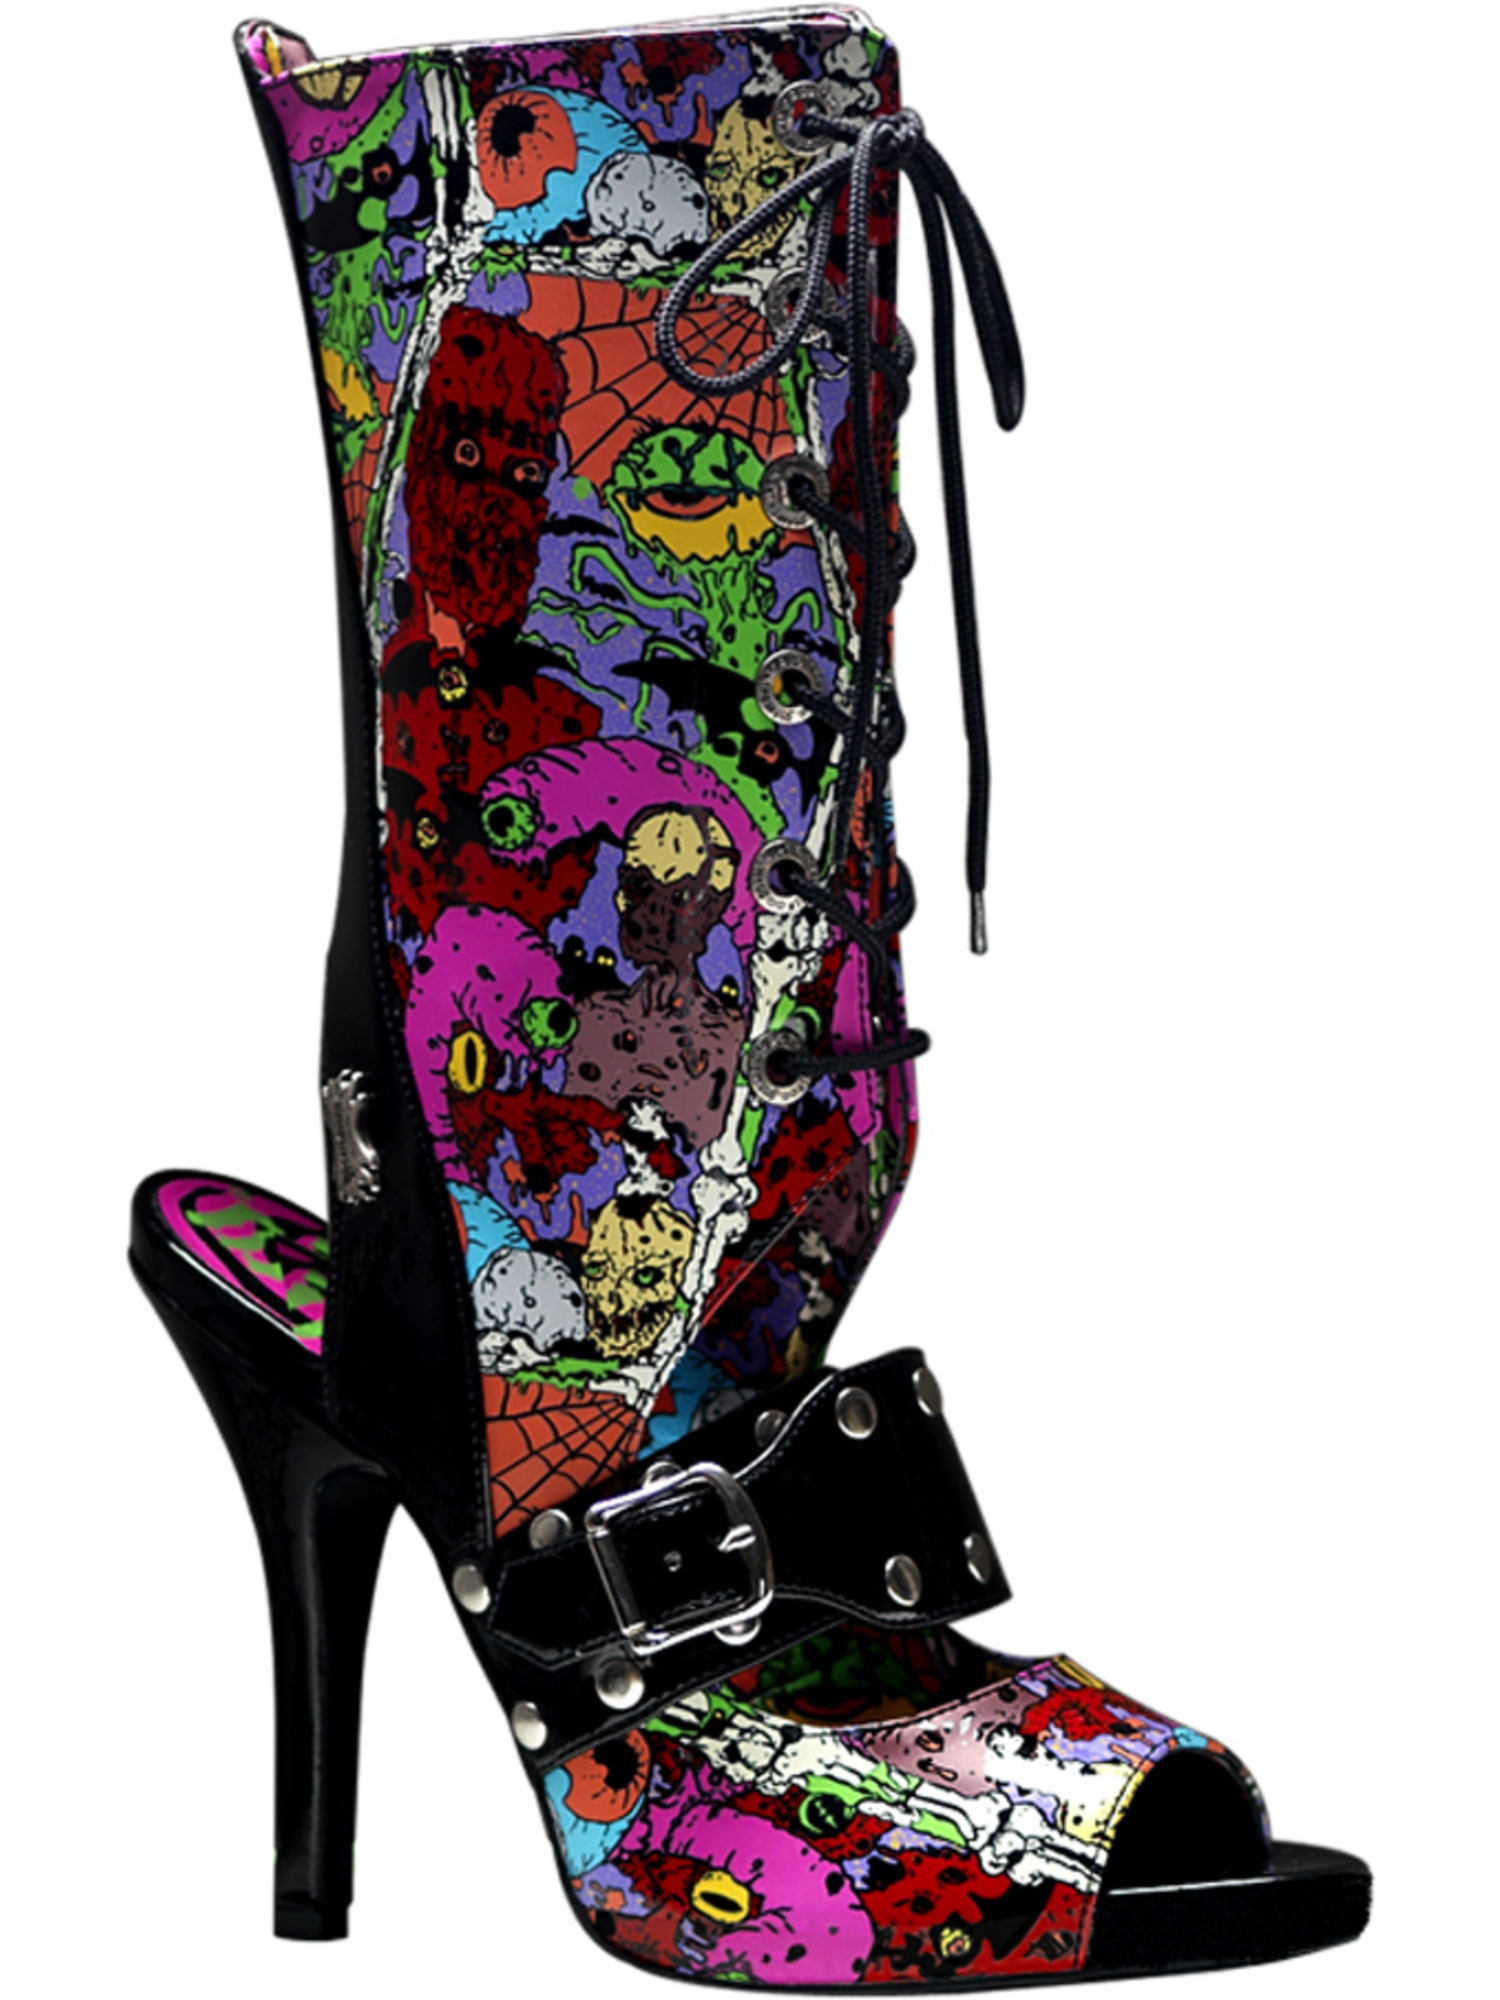 Womens Zombie Screen Print Boots 4 1/2 Inch Heel Lace Up Open Heel Colorful Fun